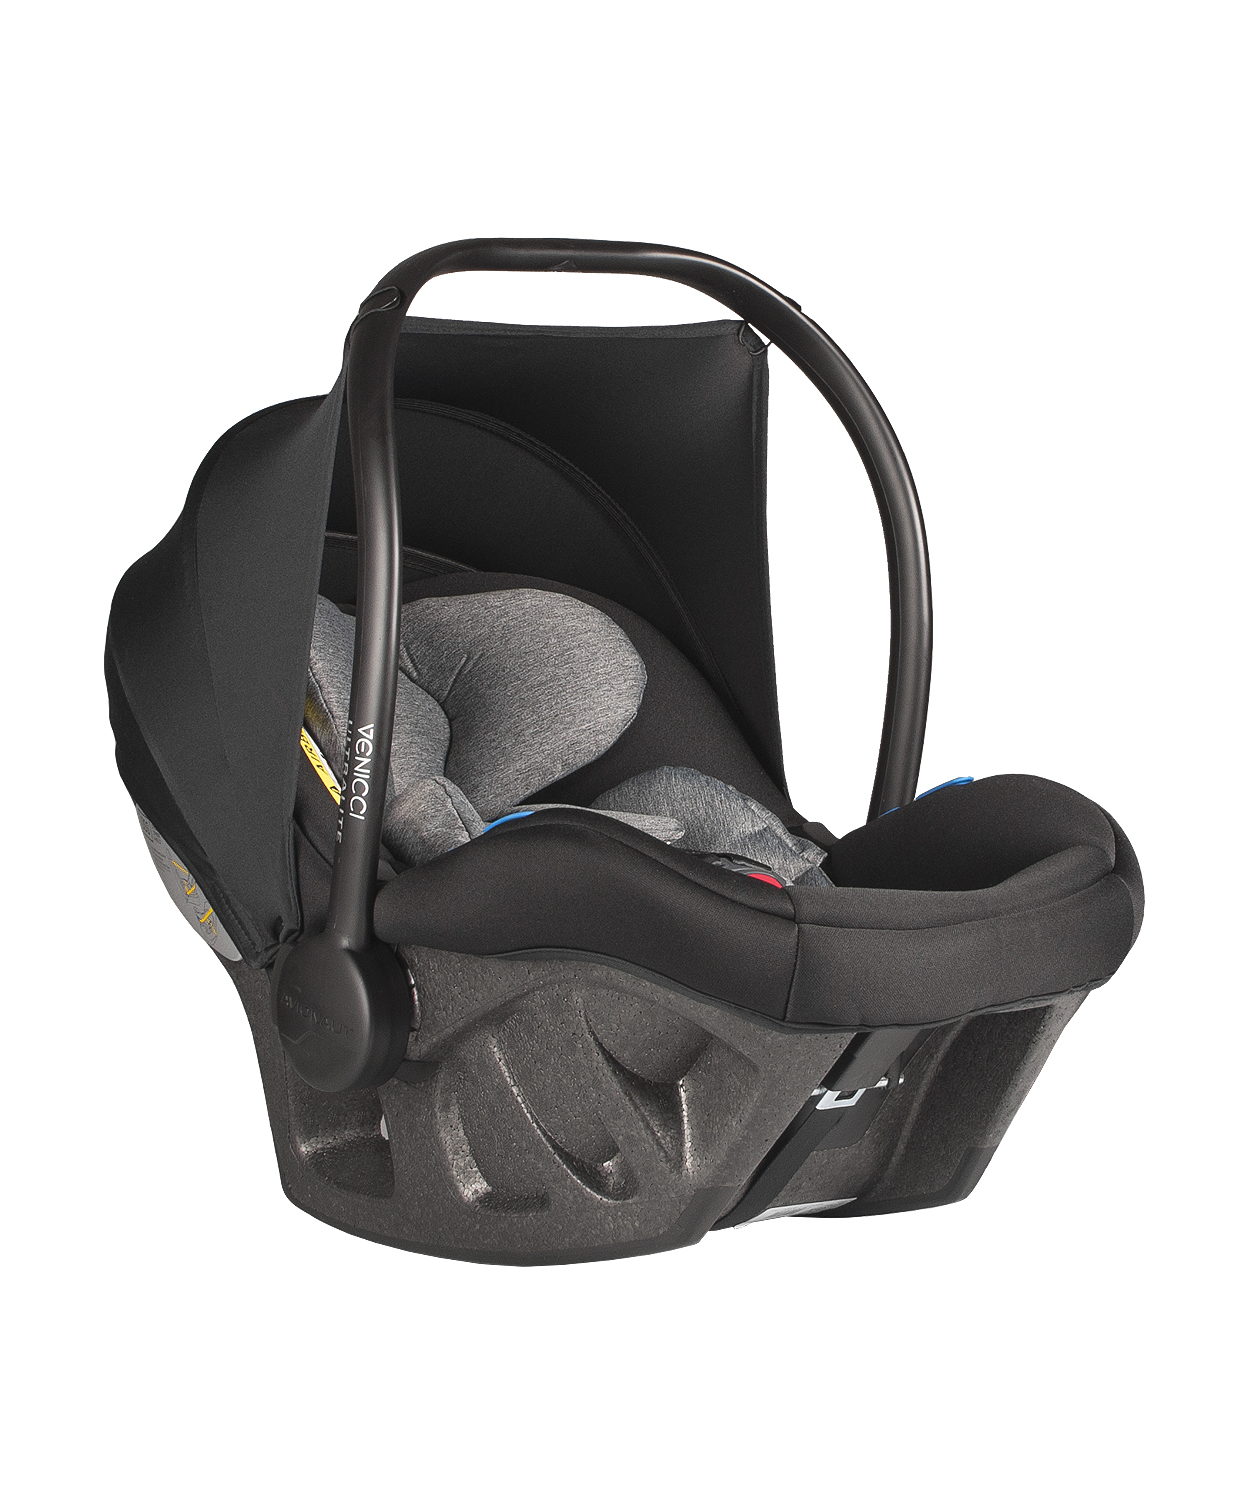 Venicci Ultra lite car seat - grey